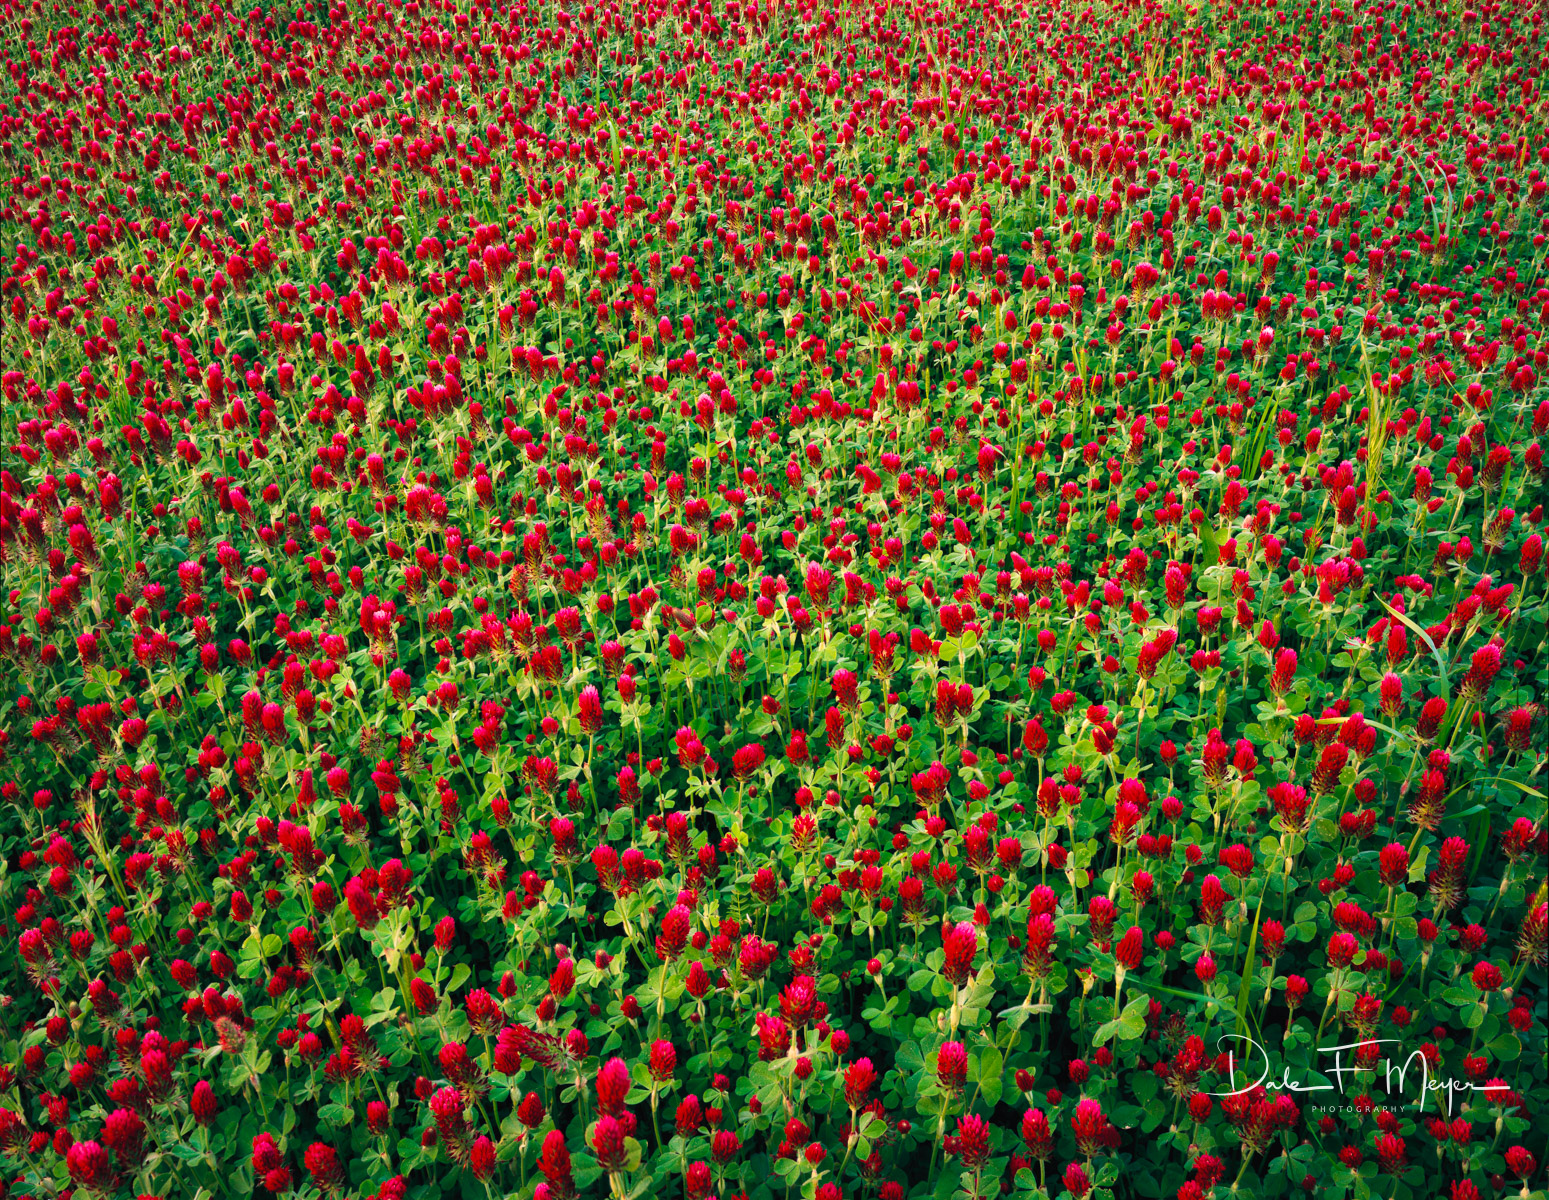 4X5 Fuji Film,Central Arkansas,crimson clover, photo